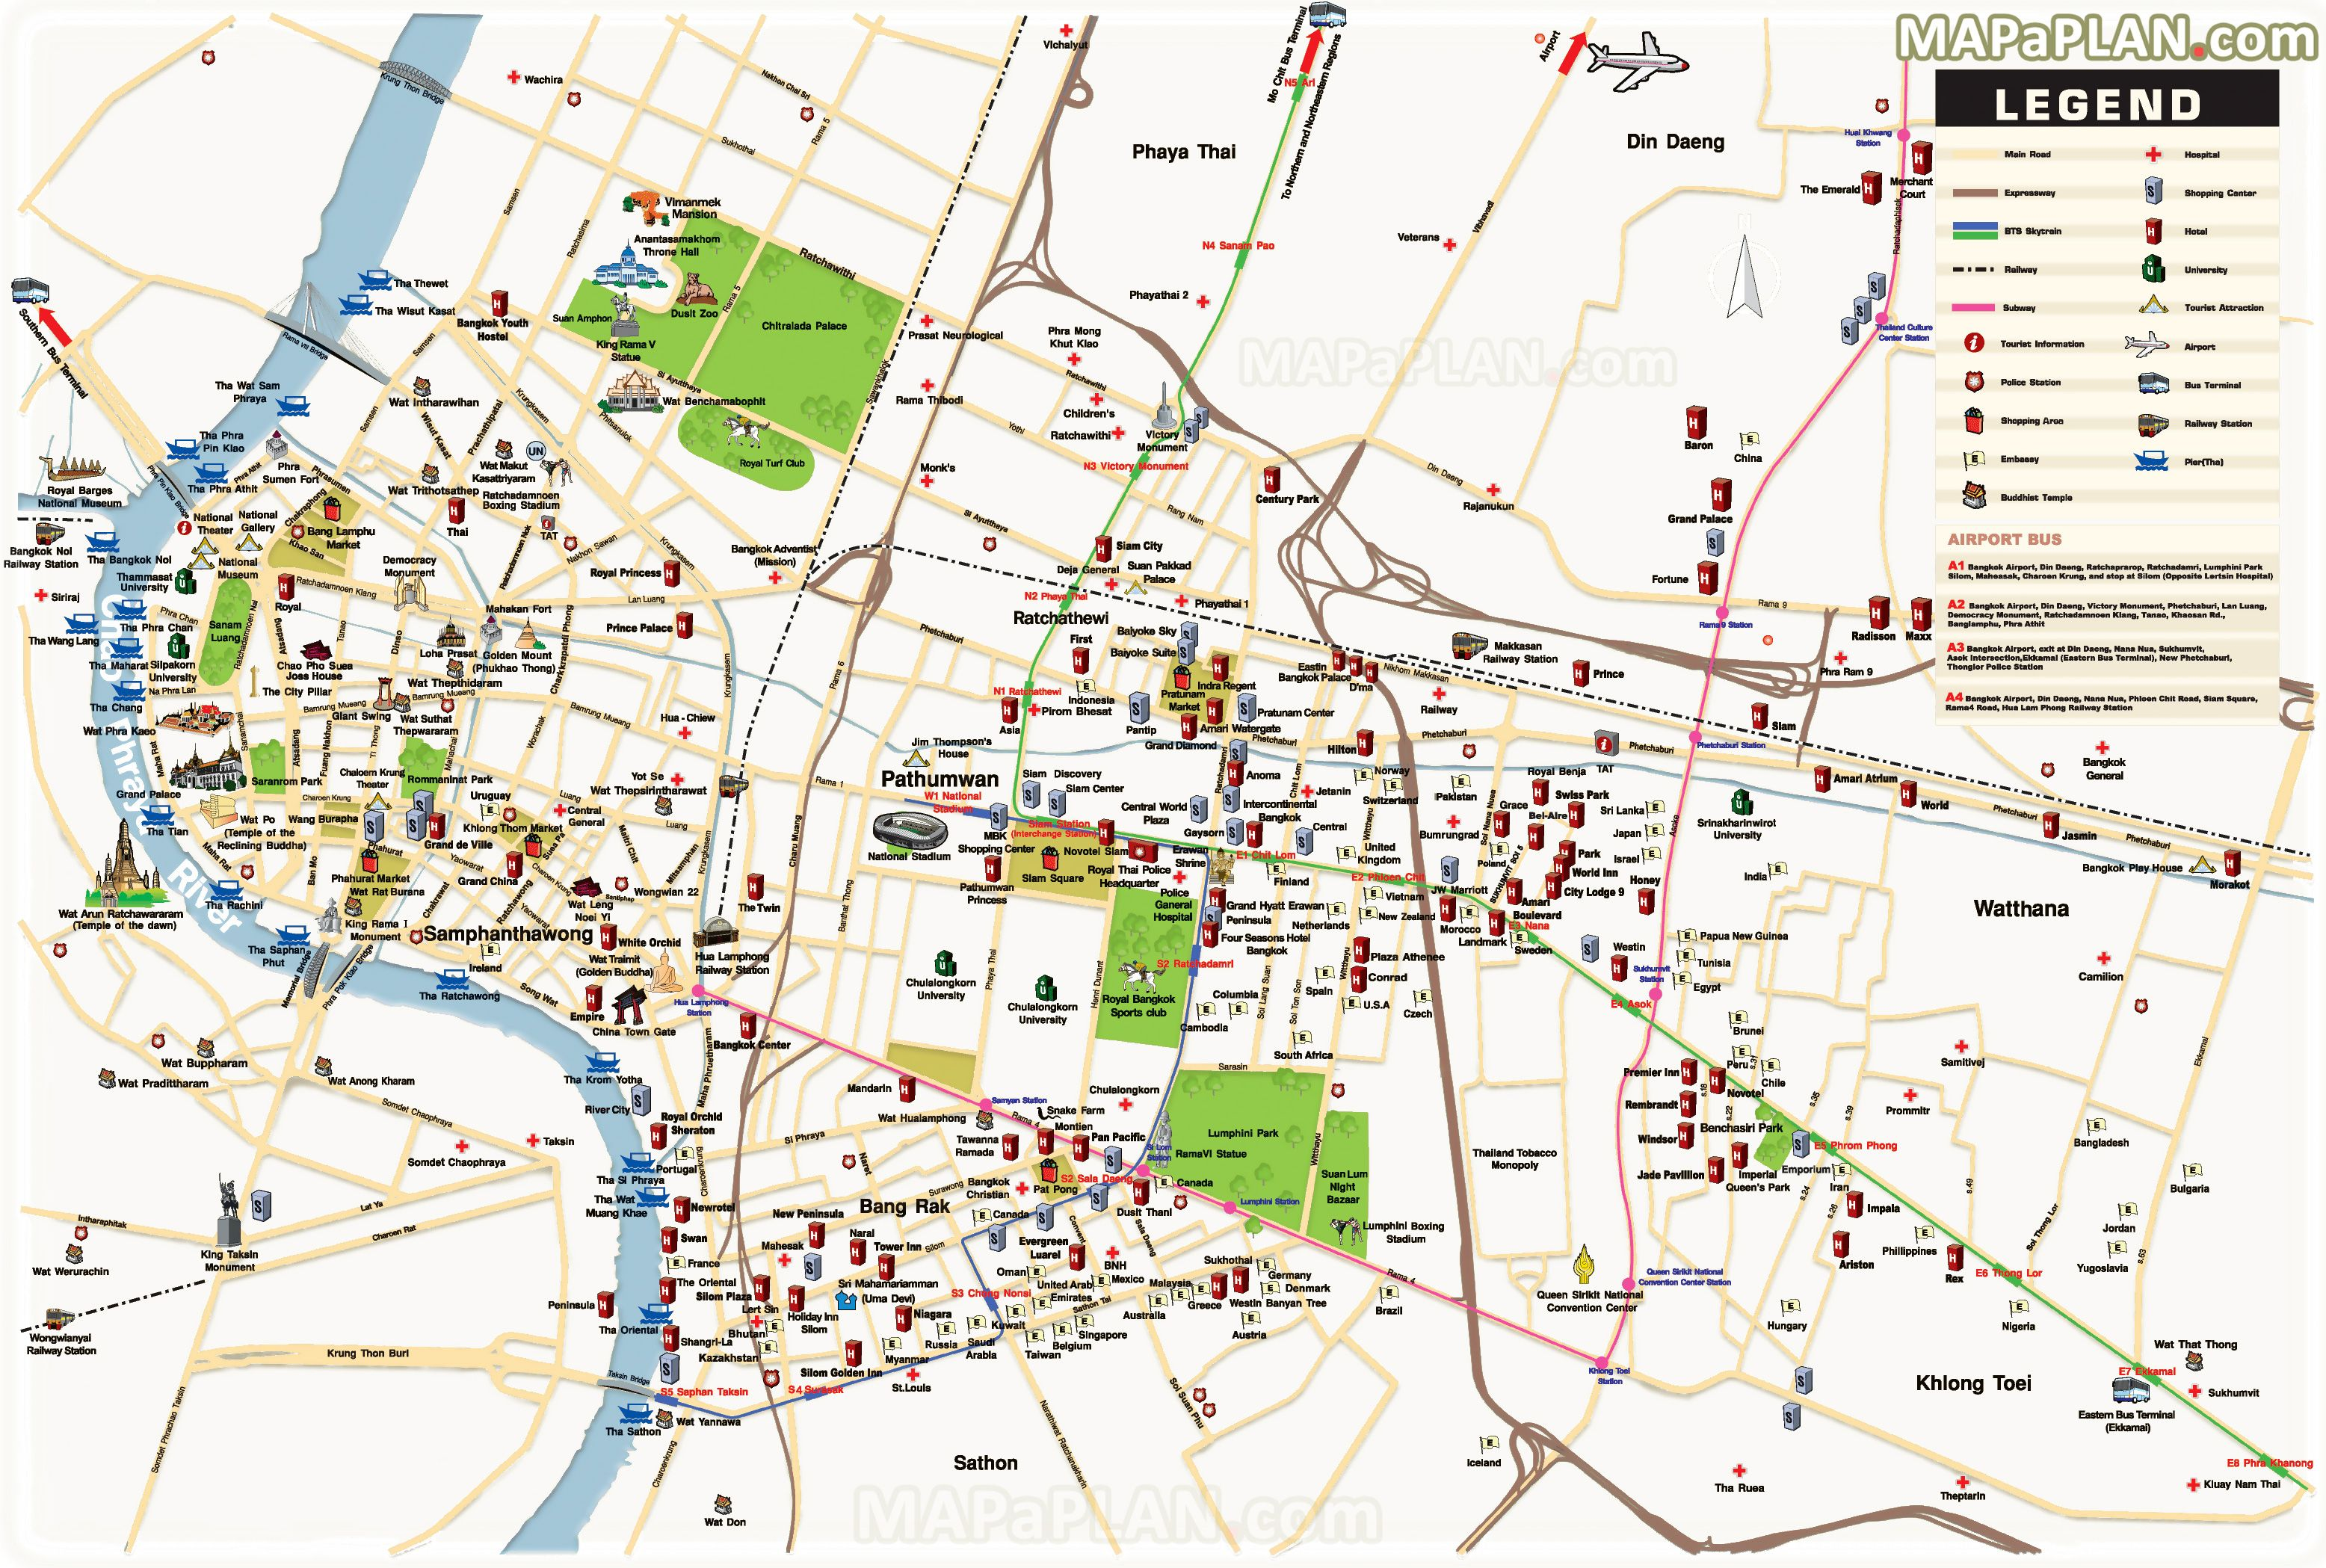 BangkoktoptouristattractionsmapDetaileddbirdseyeaerial - Map sites for directions